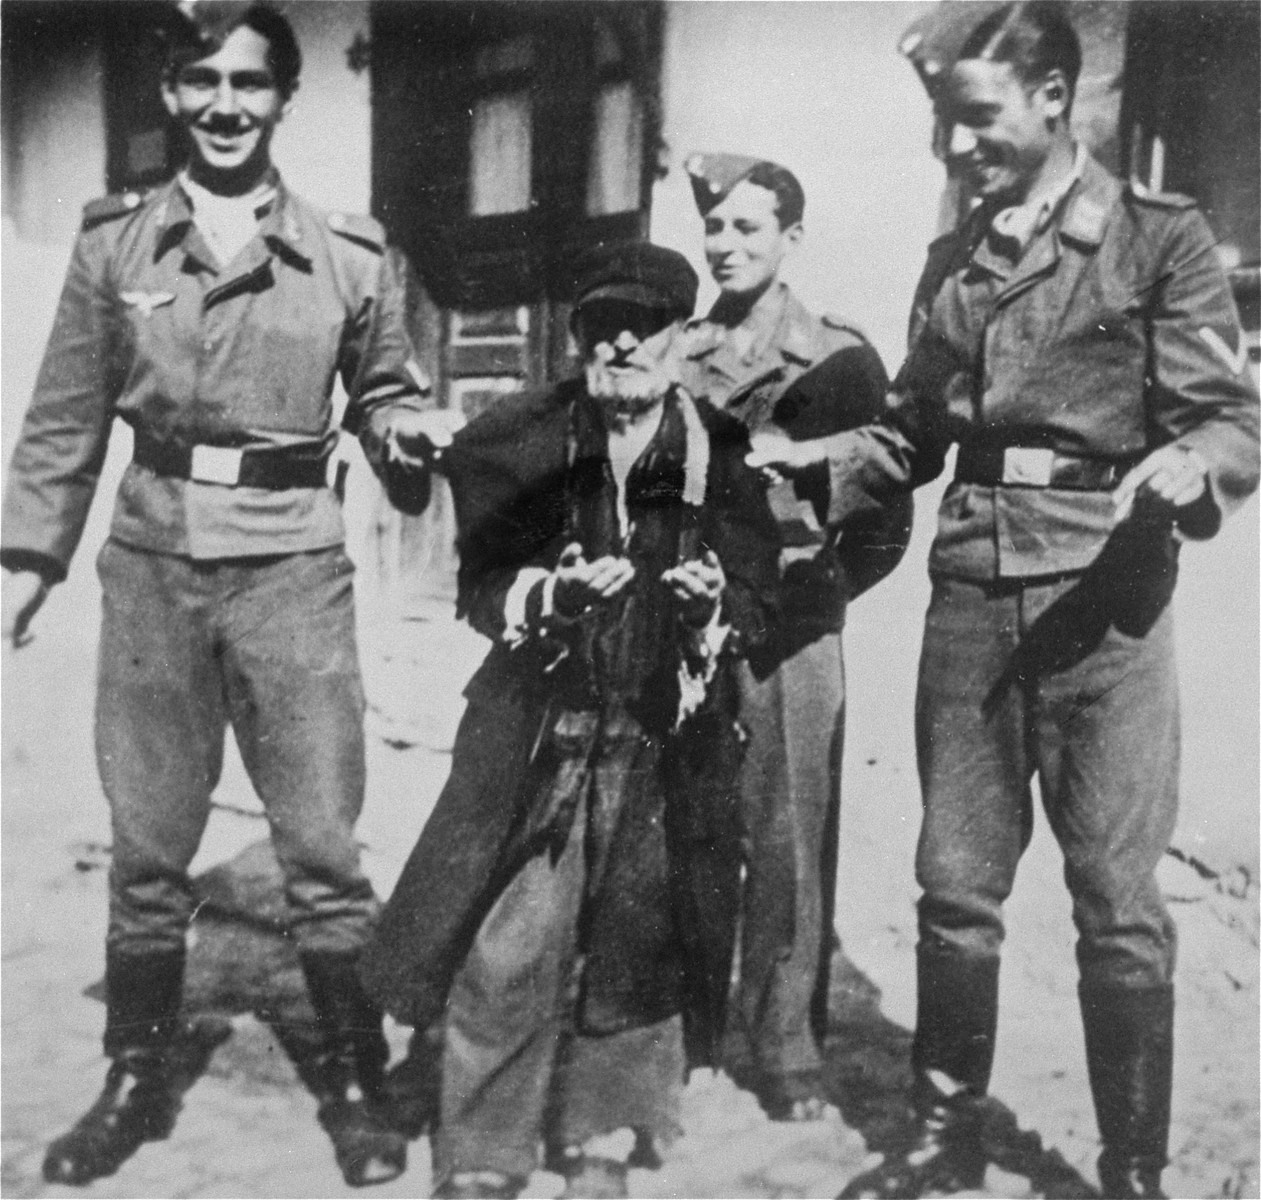 Three young Germans publicly humiliate an elderly Jew in the streets of Krzemieniec.